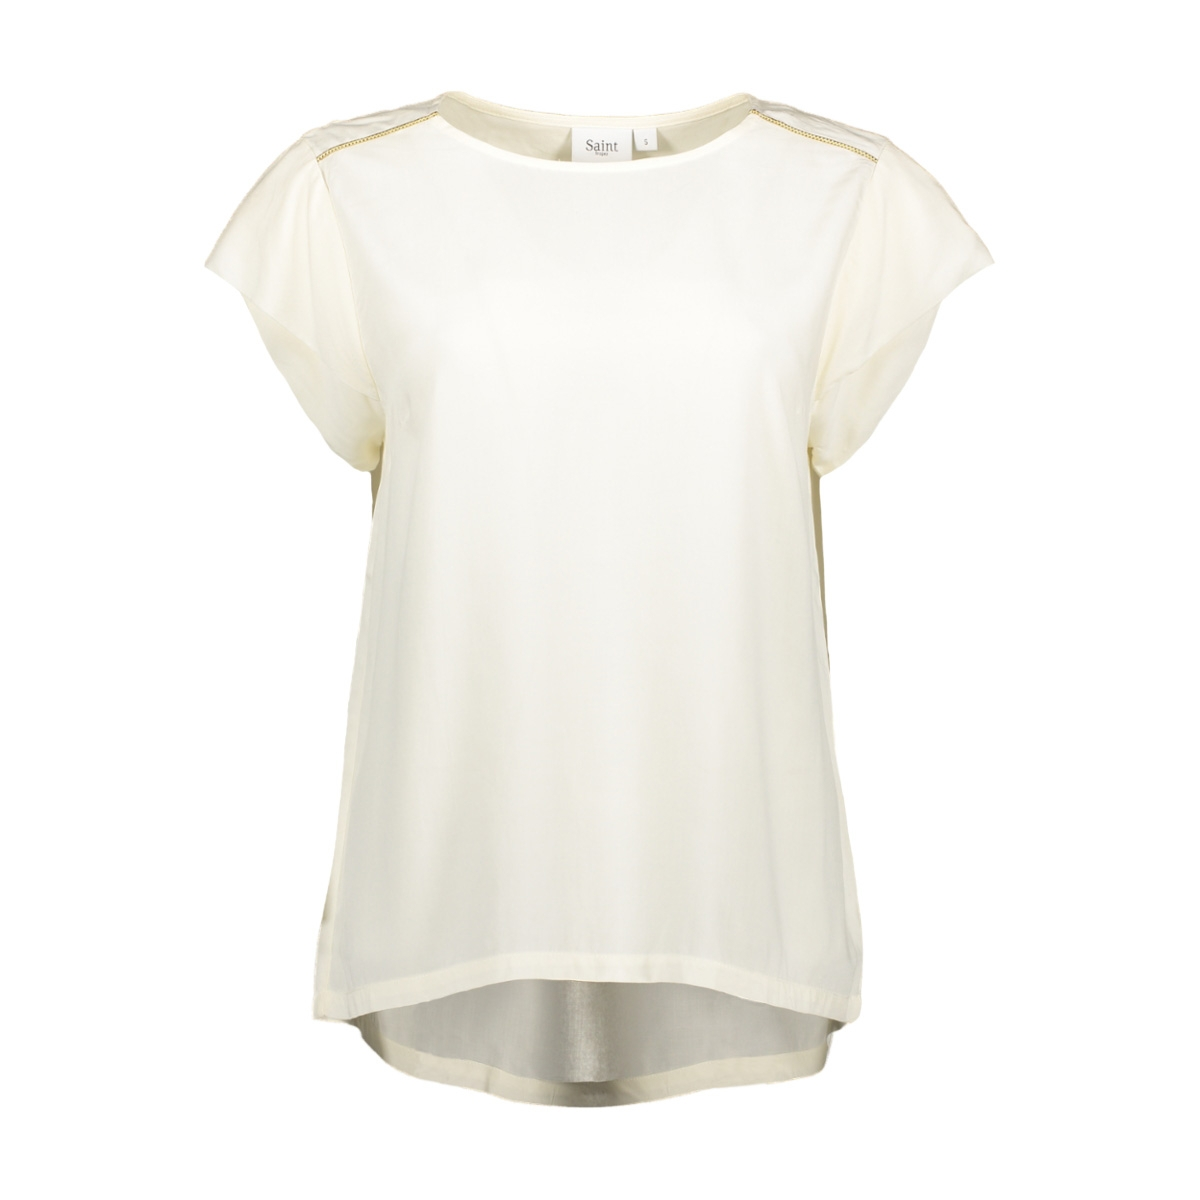 top w sleeve detail t1093 saint tropez t-shirt 1053